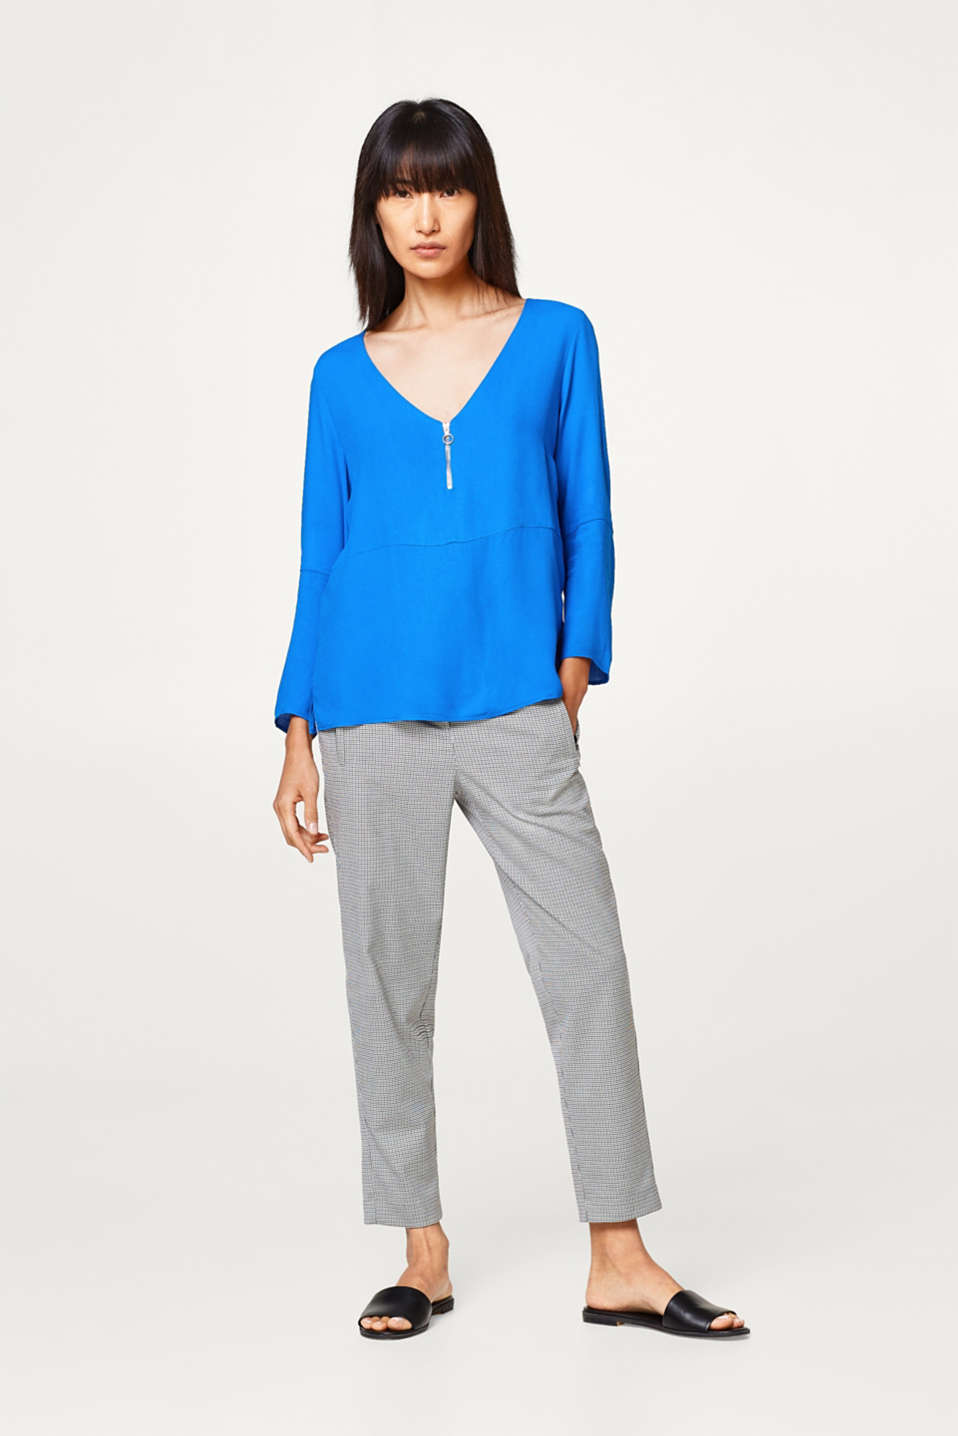 Soft lyocell long-sleeve top with a V-neck